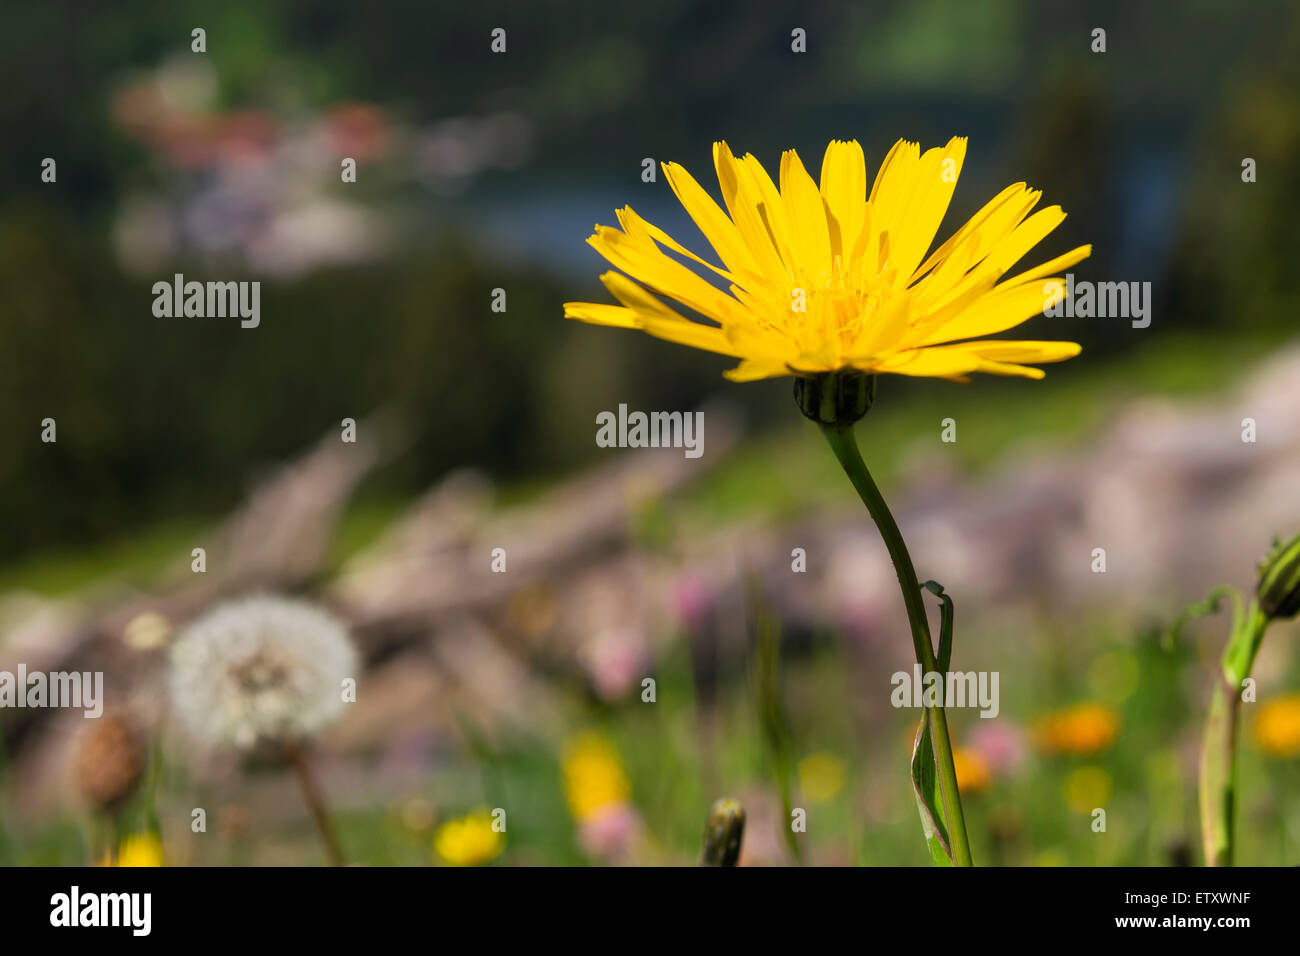 Dandelion flower on mountain Jaegerkamp in the Alps in Bavaria, Germany - Stock Image